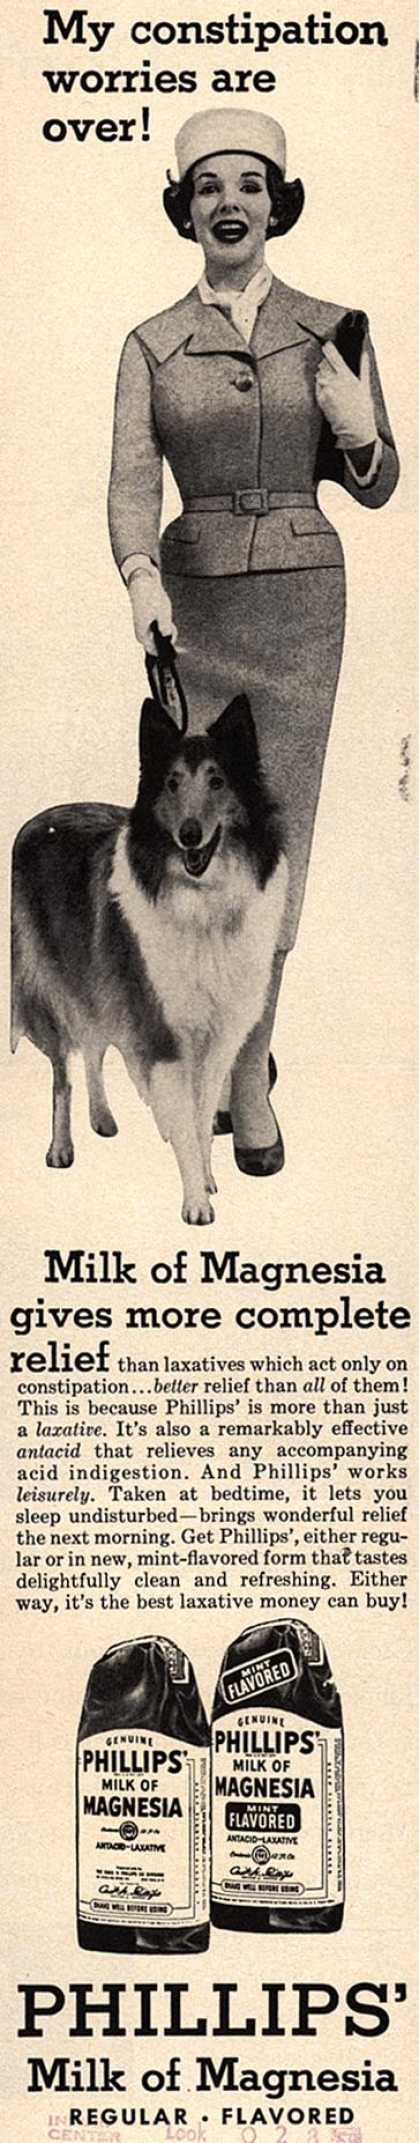 Chas. H. Phillips Chemical Co.'s Milk of Magnesia – My constipation worries are over (1958)